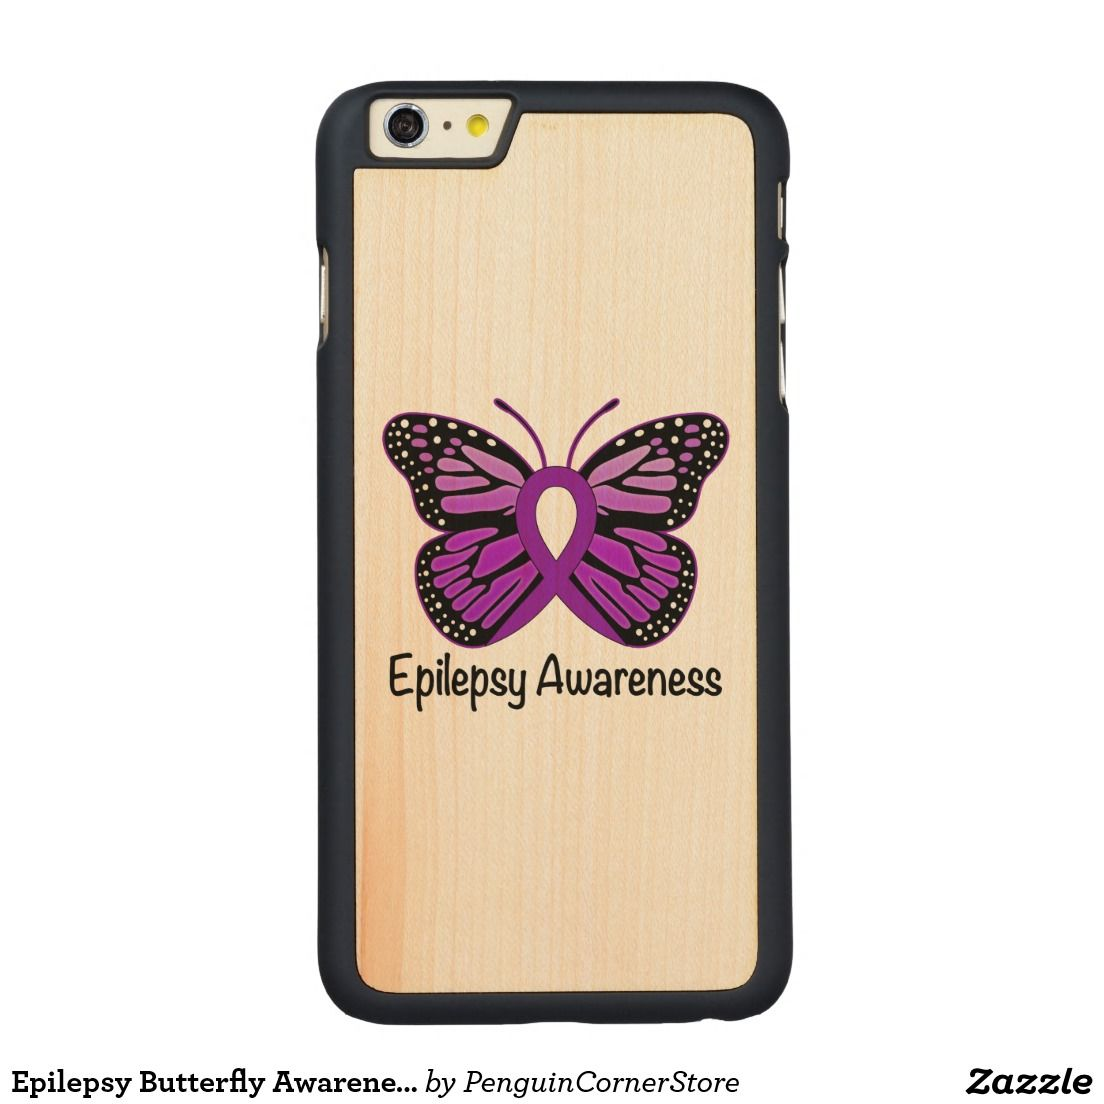 Epilepsy Butterfly Awareness Ribbon Carved Maple Iphone 6